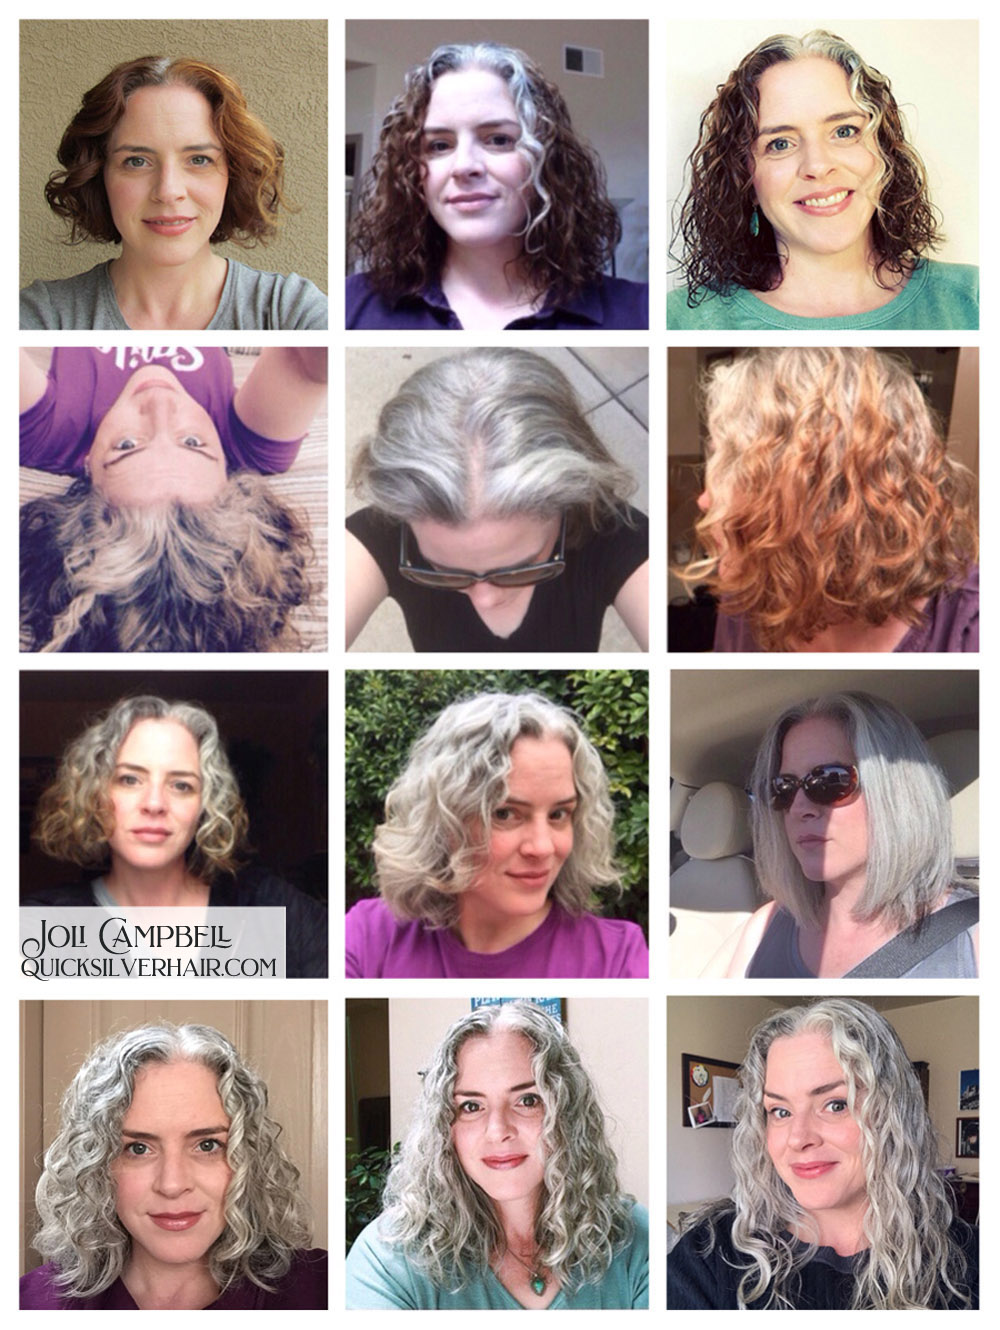 Collage images of Joli Campbell's Tranisition to Gray Hair